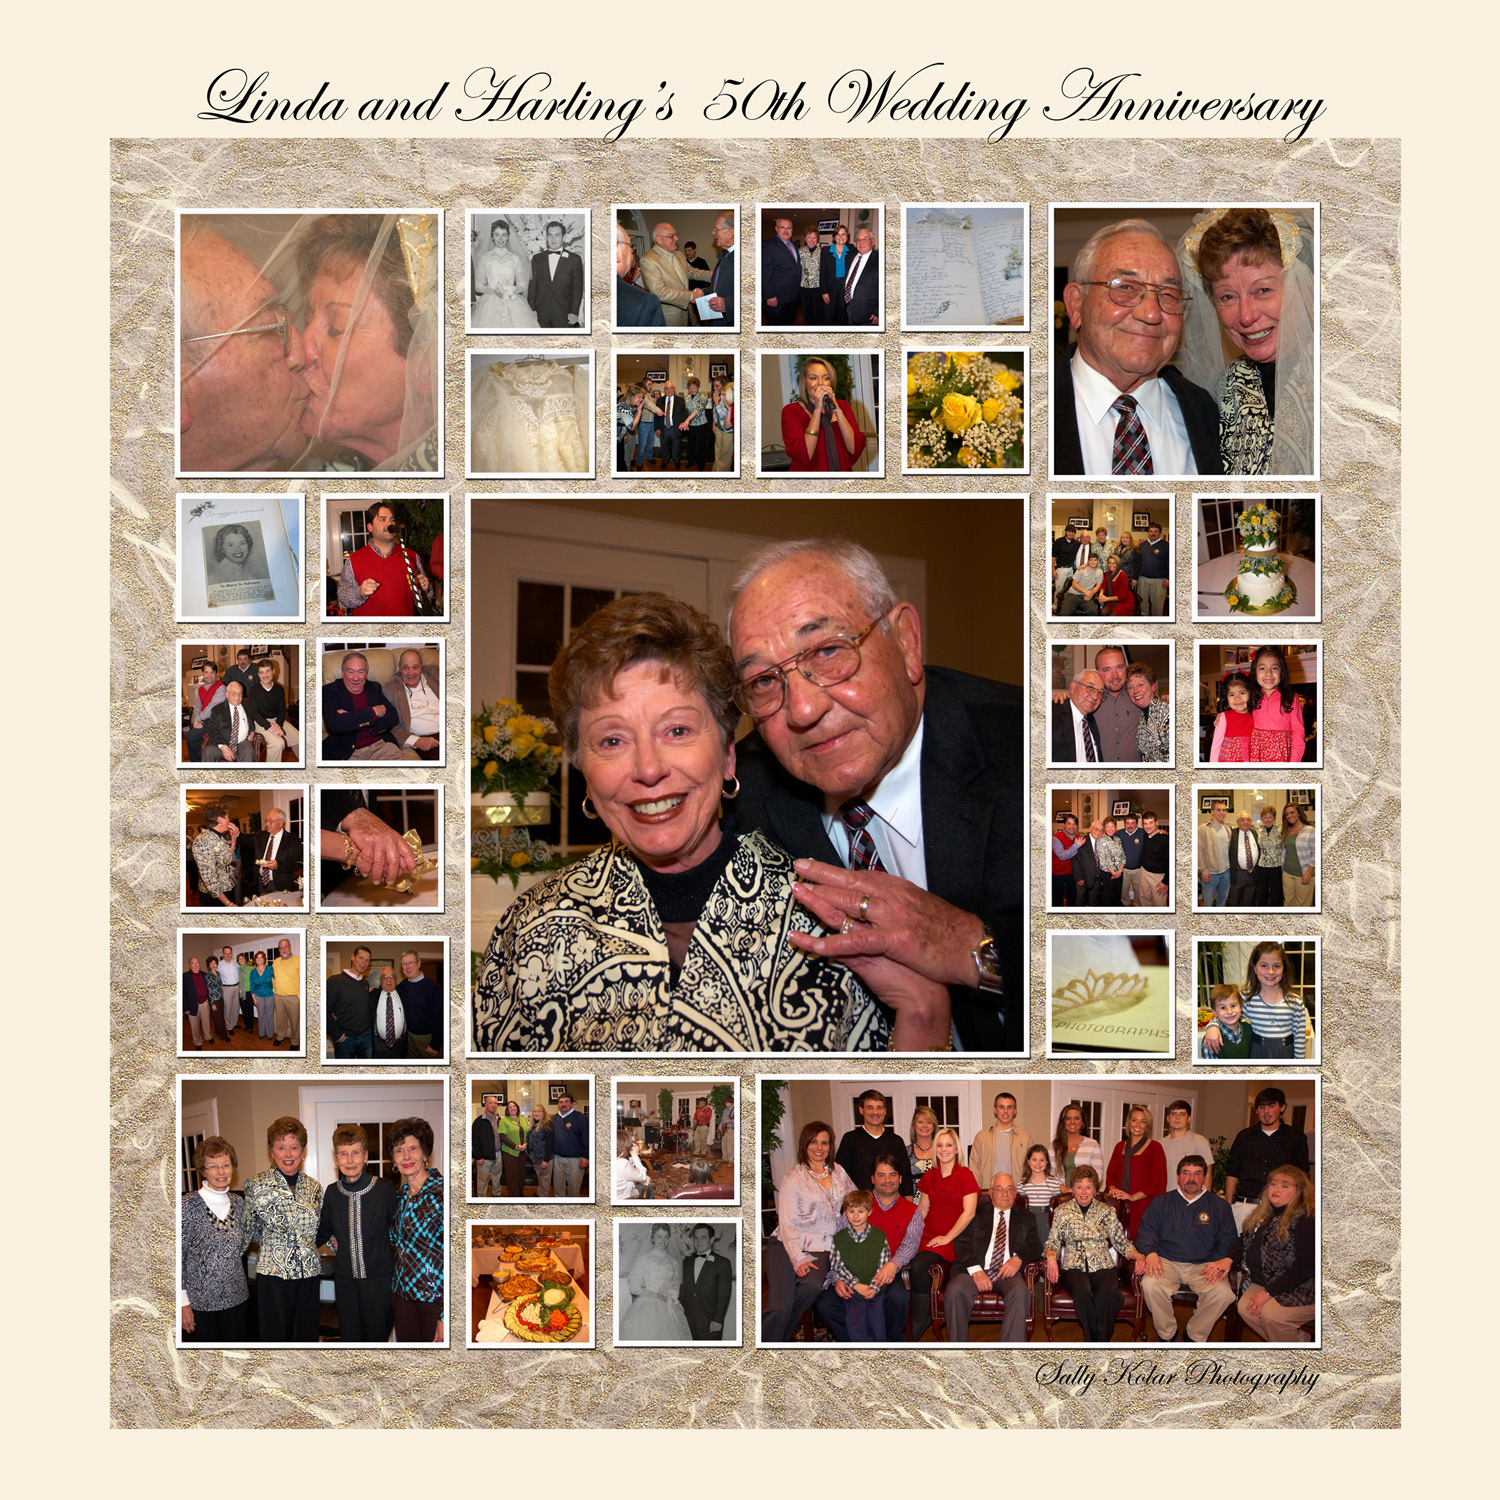 Linda and Harling's 50th Wedding Anniversary Party ...